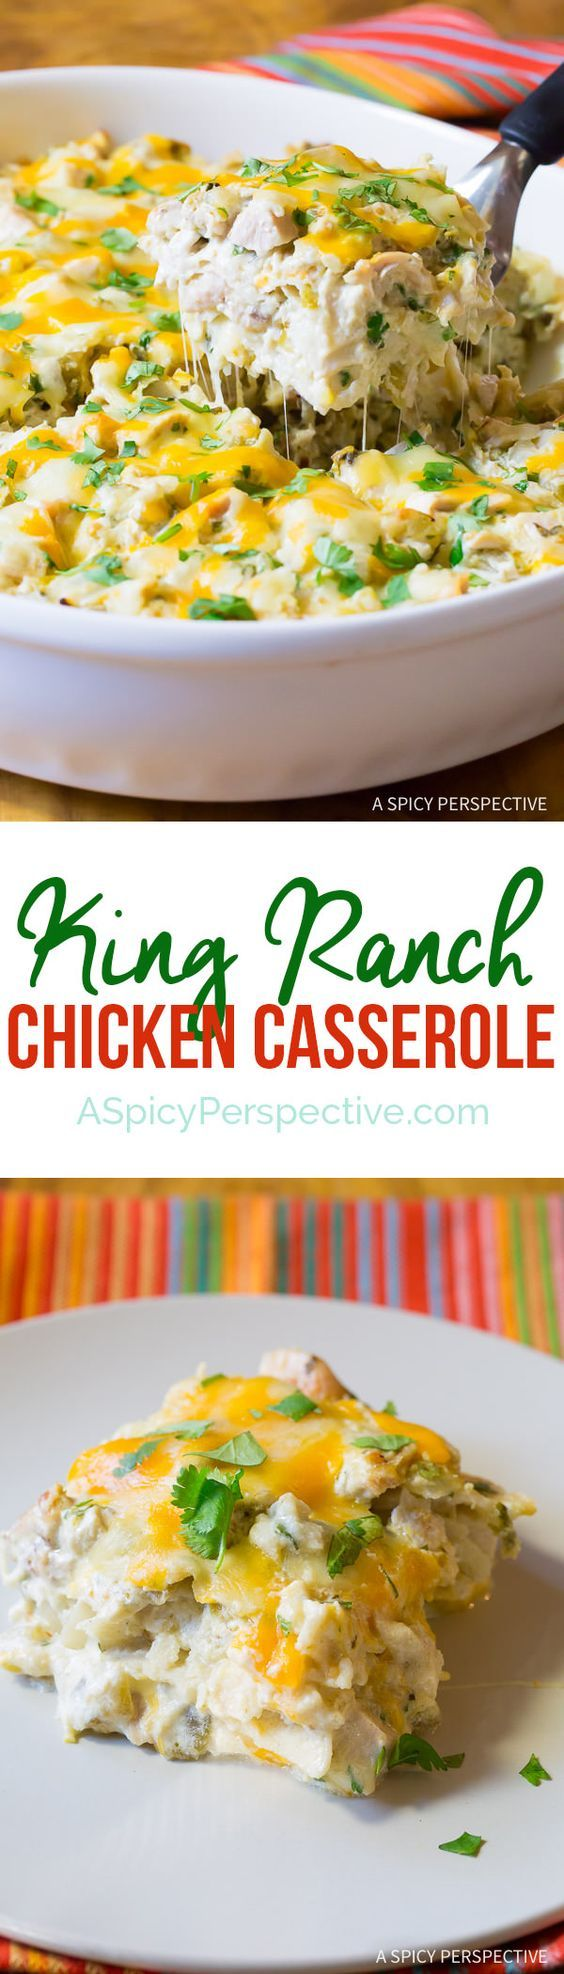 FINALLY! A King Ranch Chicken Casserole without condensed soups | Cheesy Zesty King Ranch Chicken Casserole Recipe | ASpicyPerspective.com